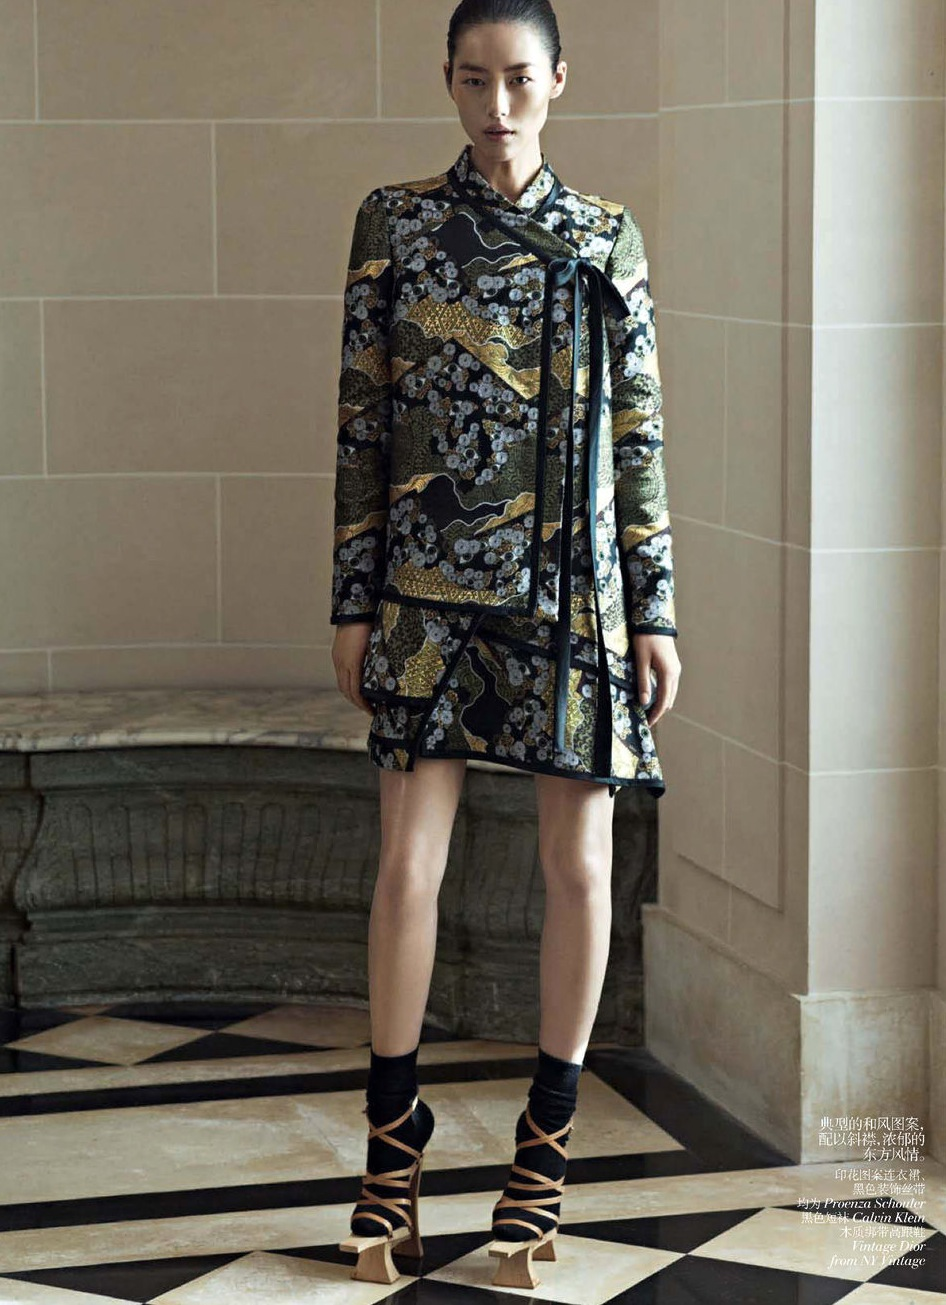 Vogue China December 2012 - Oriental Tales feature Liu Wen-3